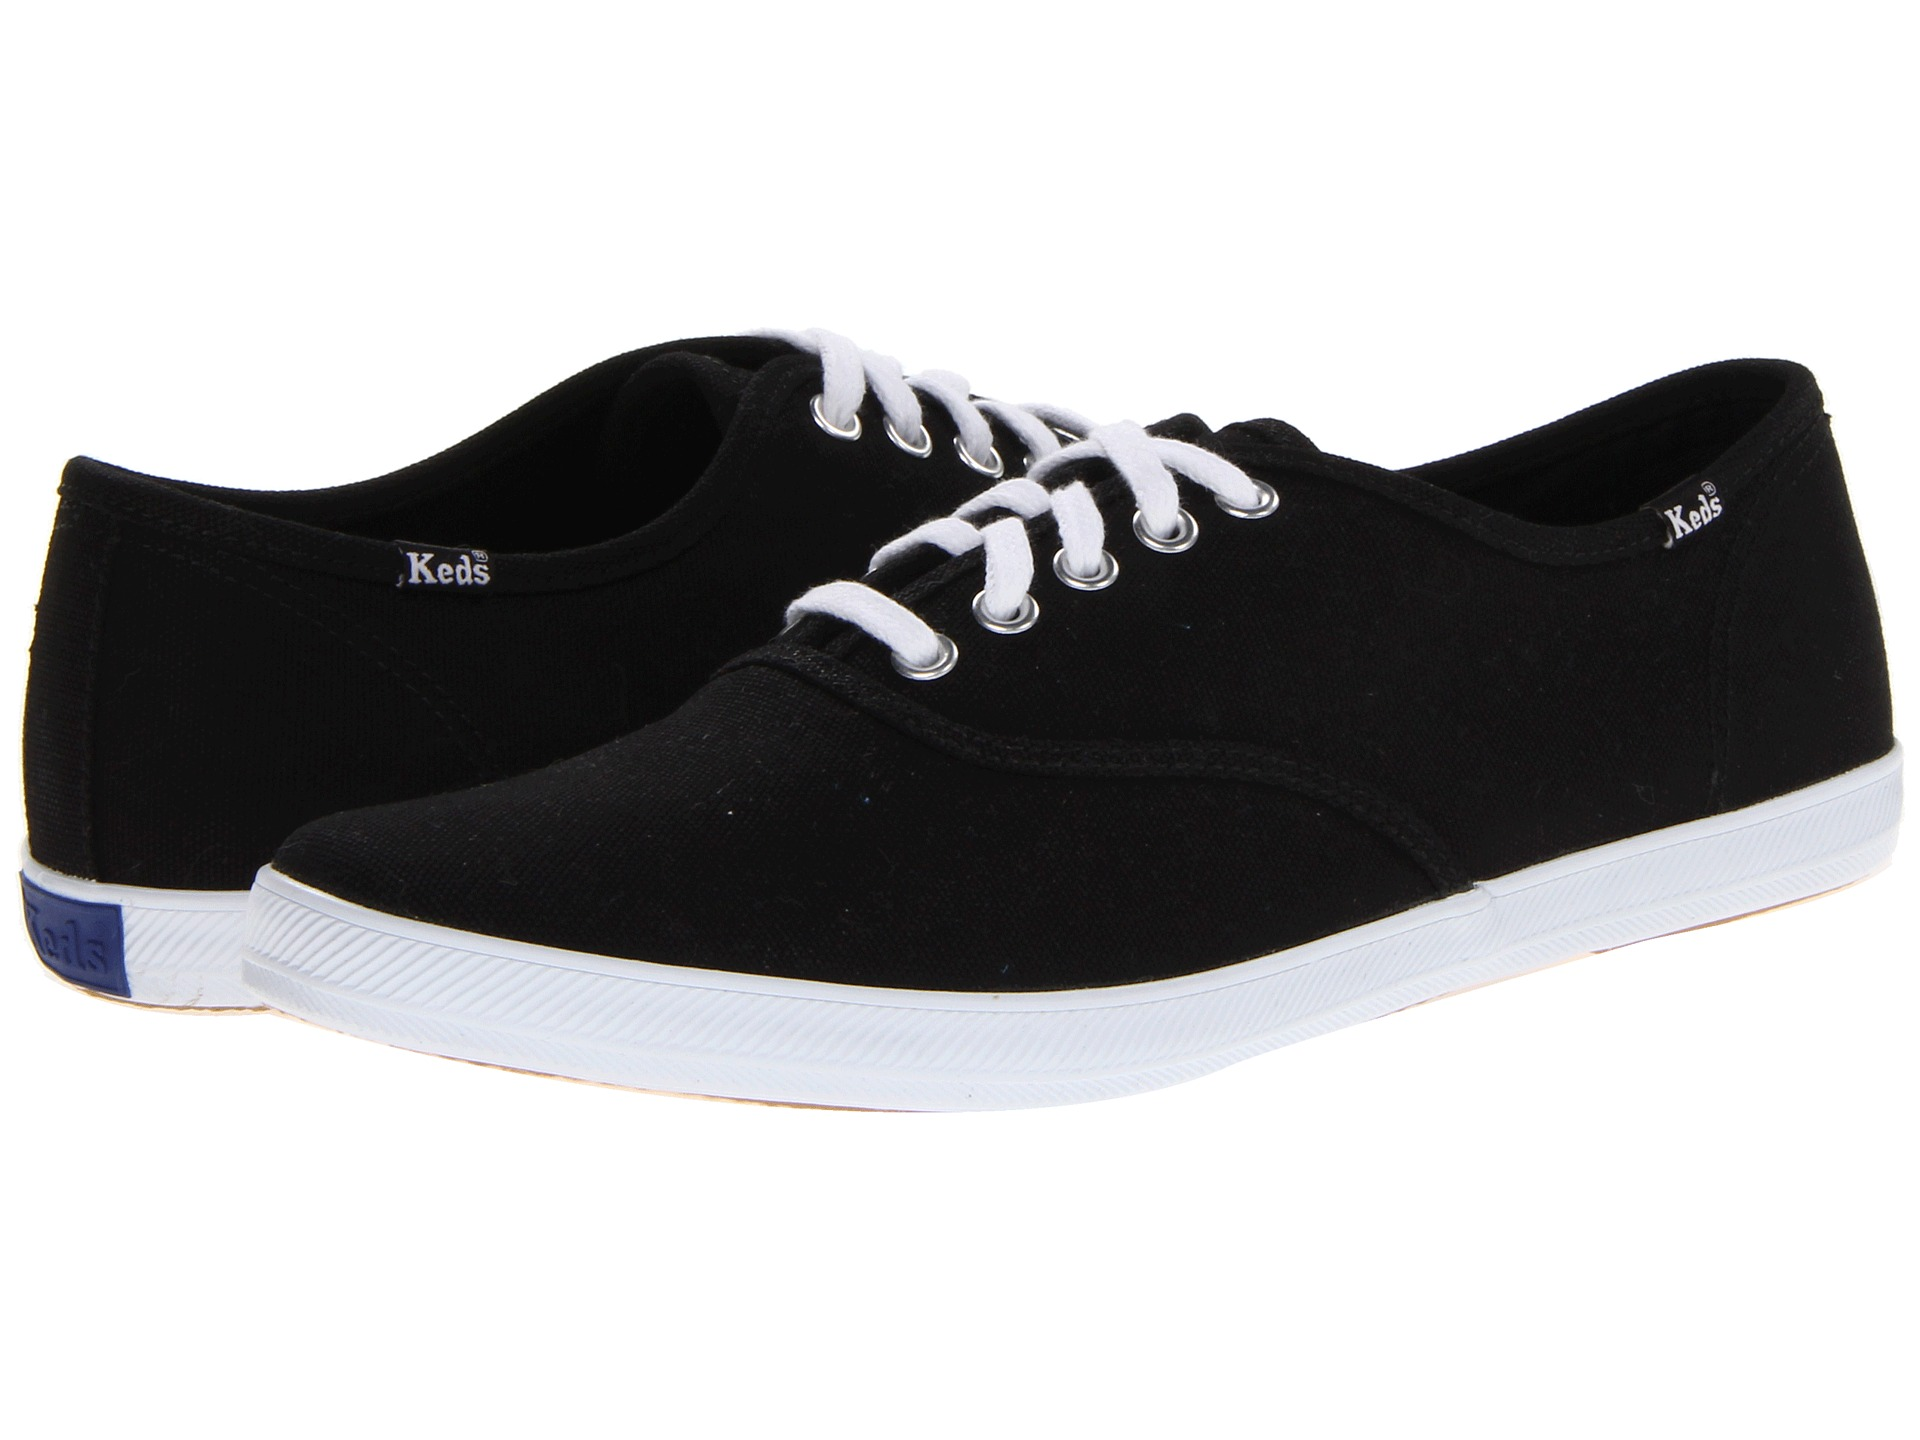 keds champion cvo shoes